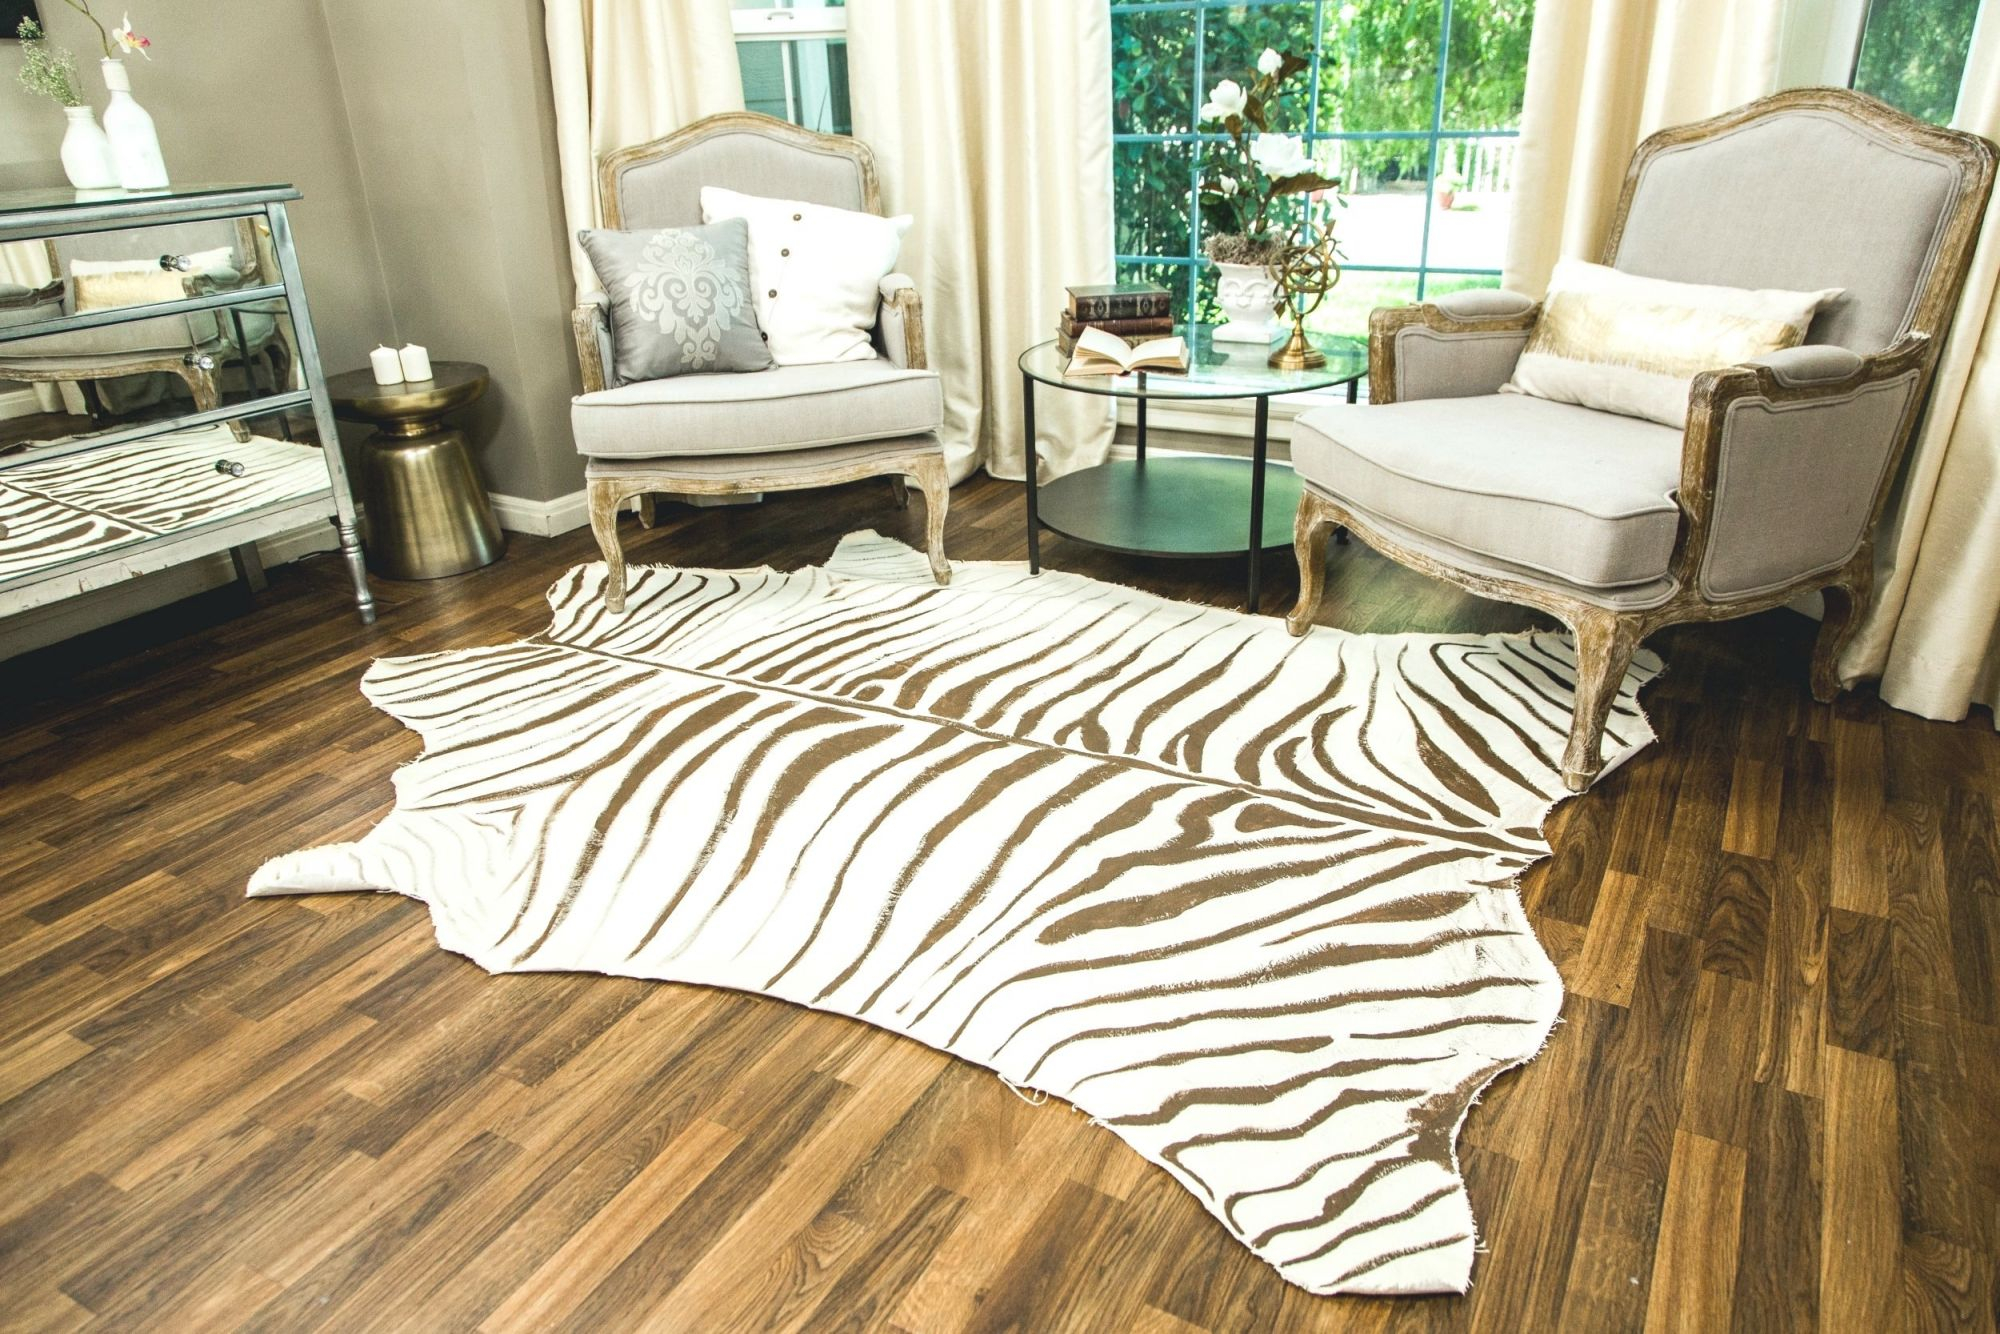 Top 55 Divine Black And White Zebra Print Area Rug Brown within Animal Print Living Room Decor